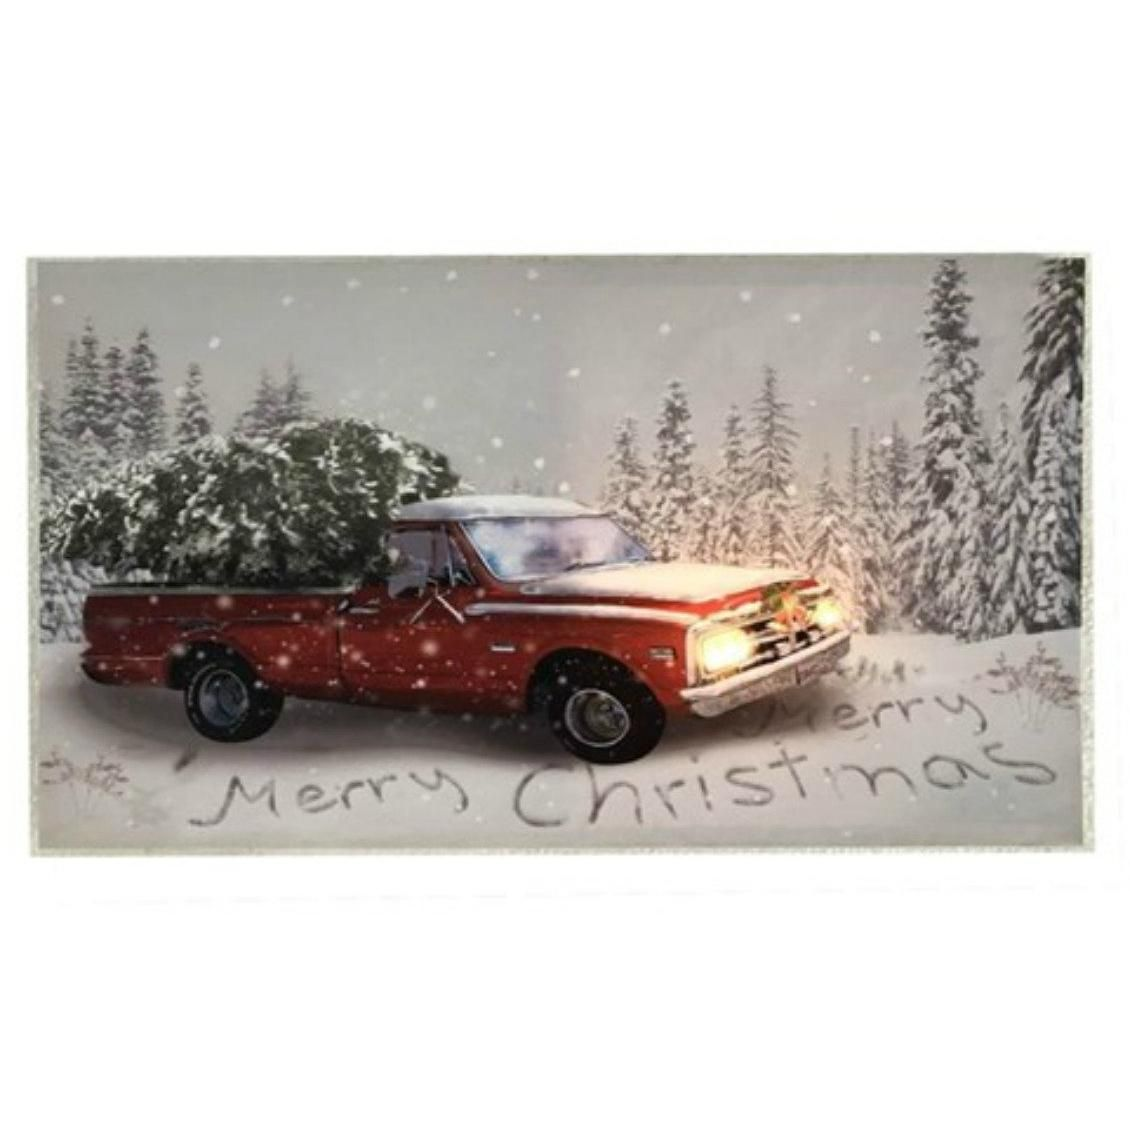 16 Red Vintage Truck Merry Christmas Wall Hanging Led Christmas Wall Hangings Vintage Truck Rustic Holiday Decor